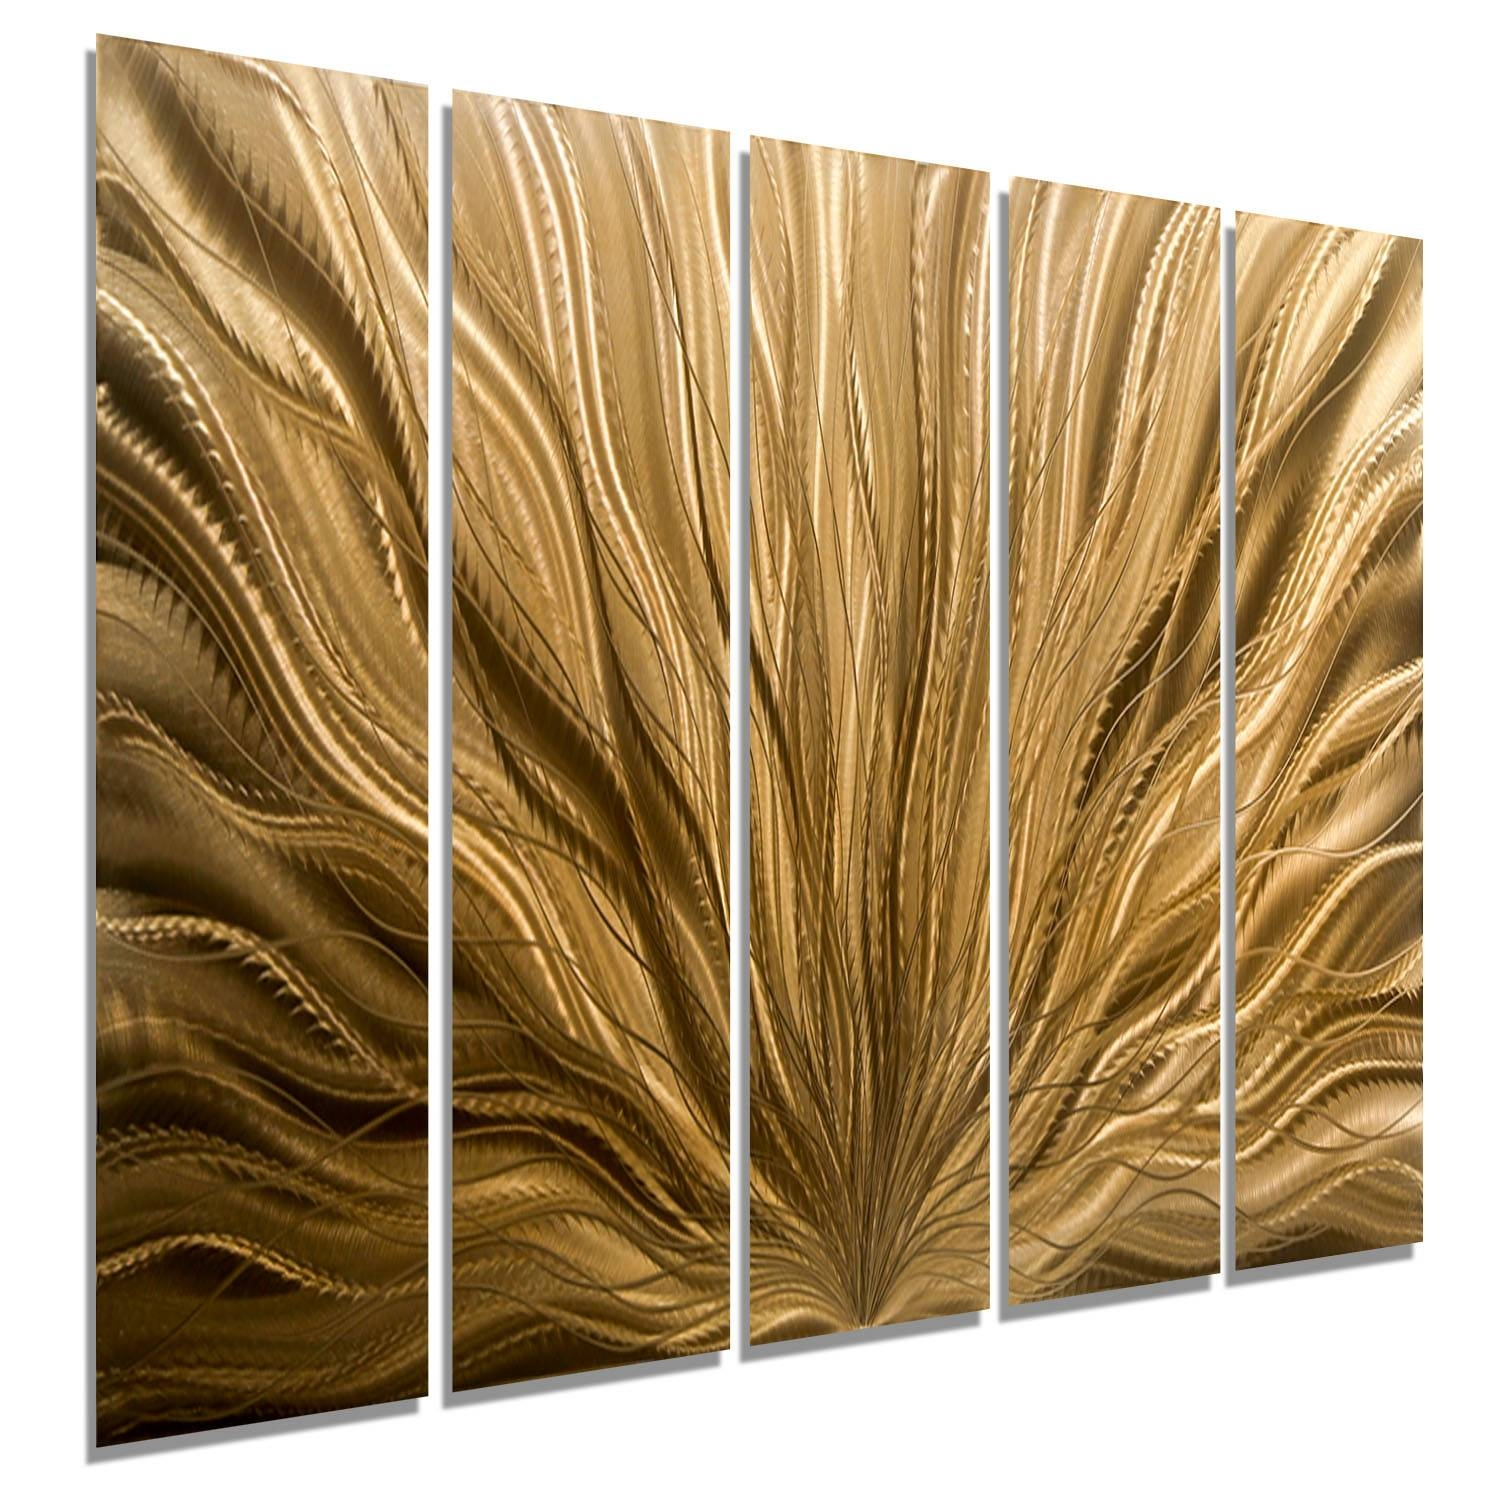 Copper Plumage Epic – Extra Large Light Copper Abstract Metal Wall Intended For Most Up To Date Abstract Metal Wall Art (View 6 of 20)